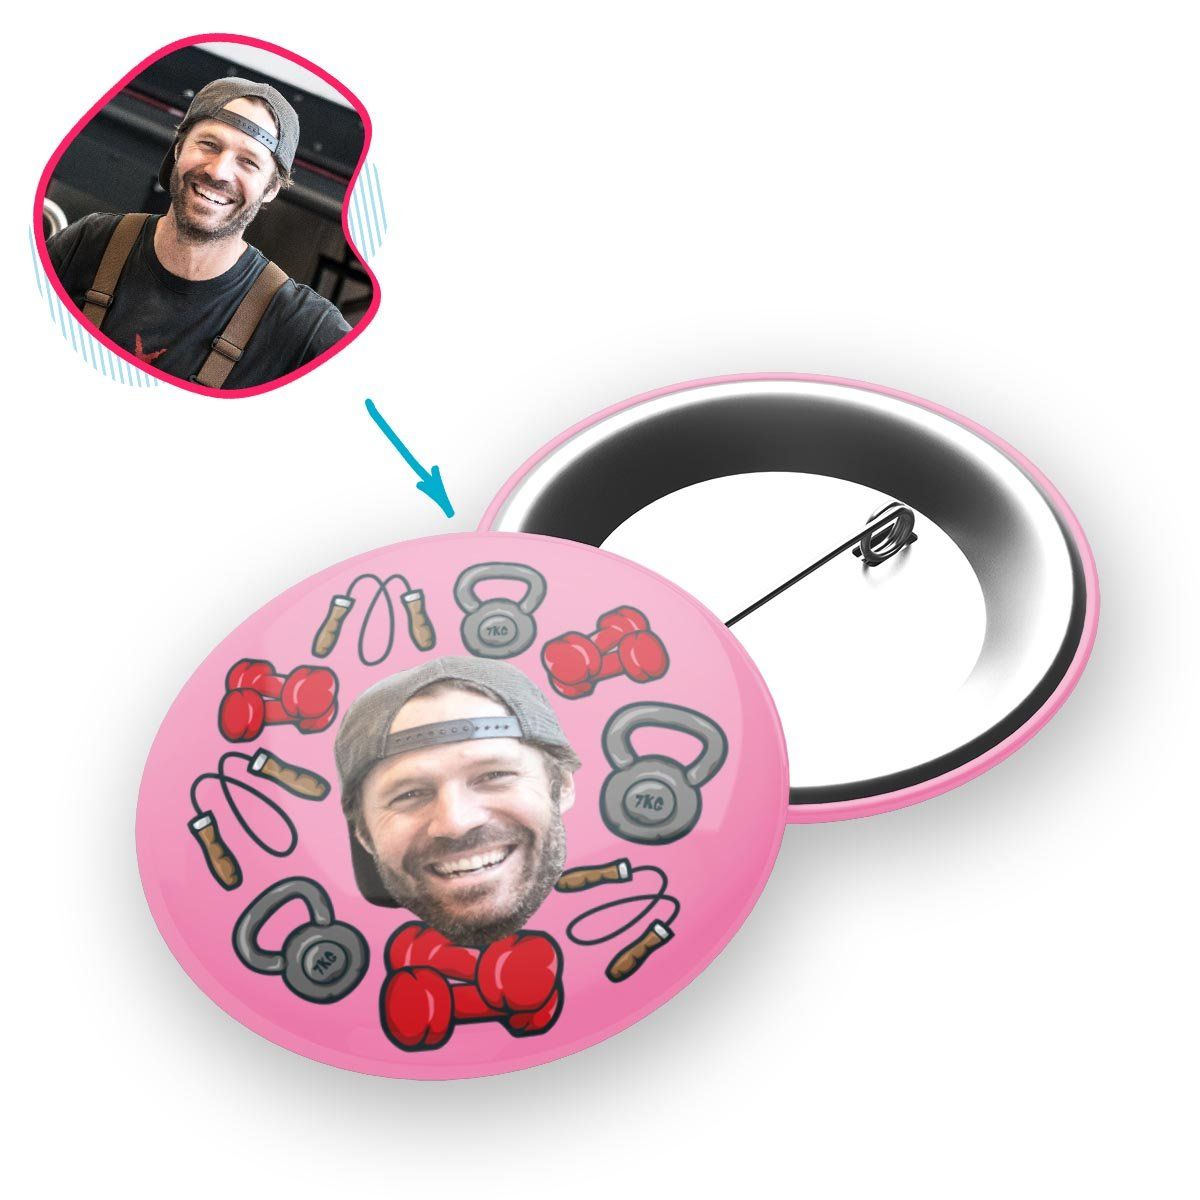 pink Gym & Fitness pin personalized with photo of face printed on it